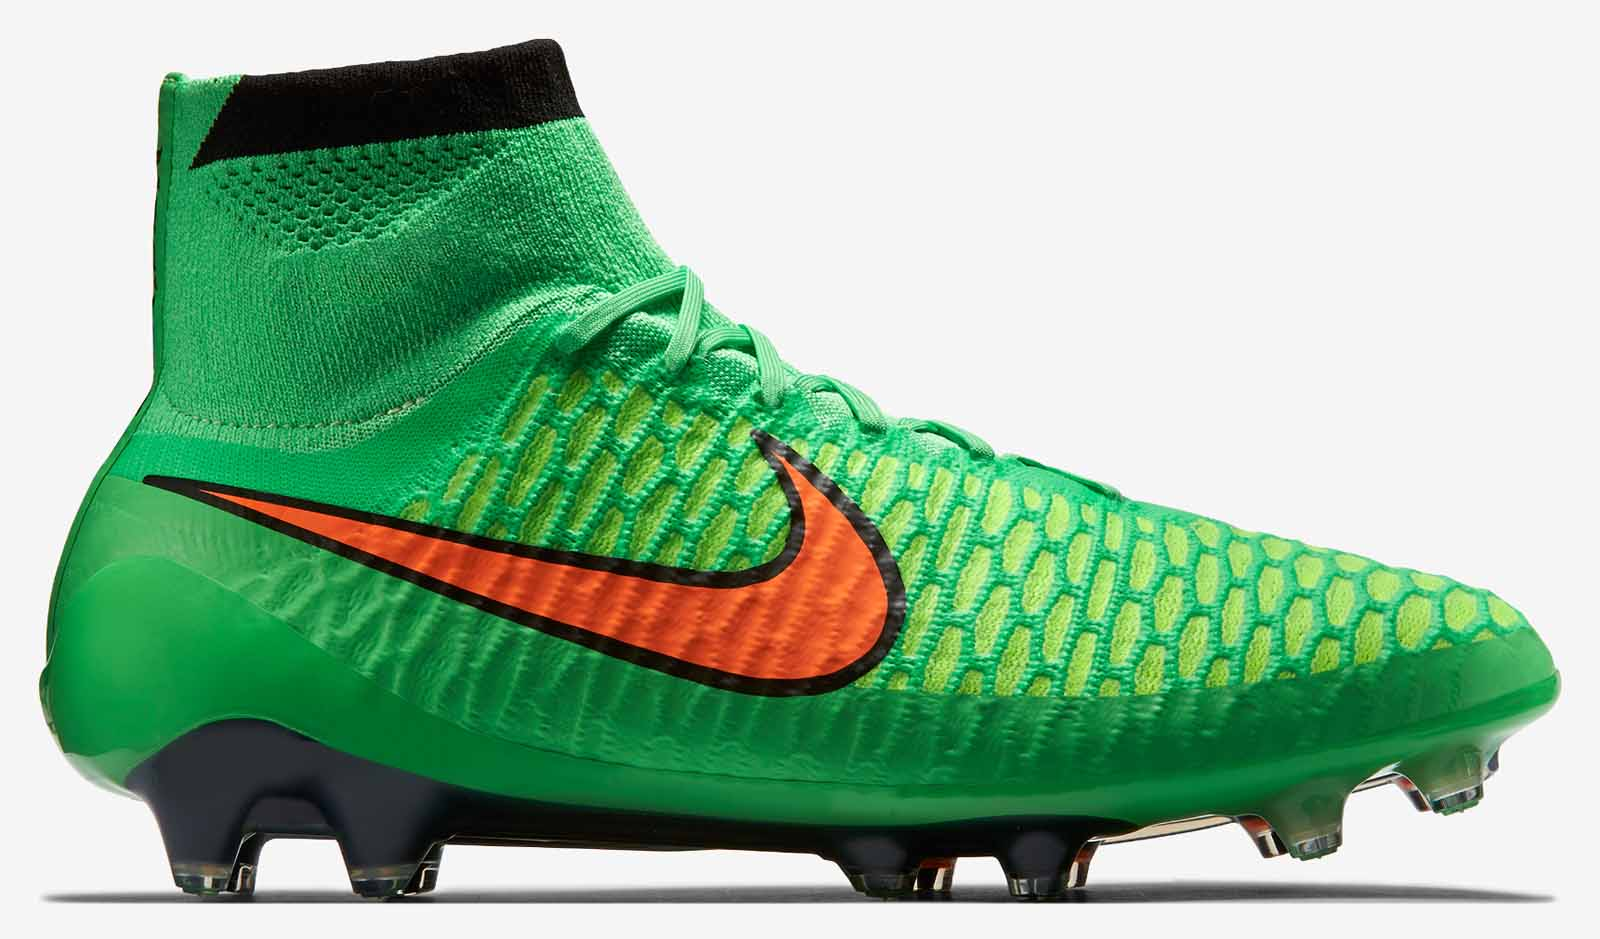 green nike magista obra 2015 boot released footy headlines. Black Bedroom Furniture Sets. Home Design Ideas